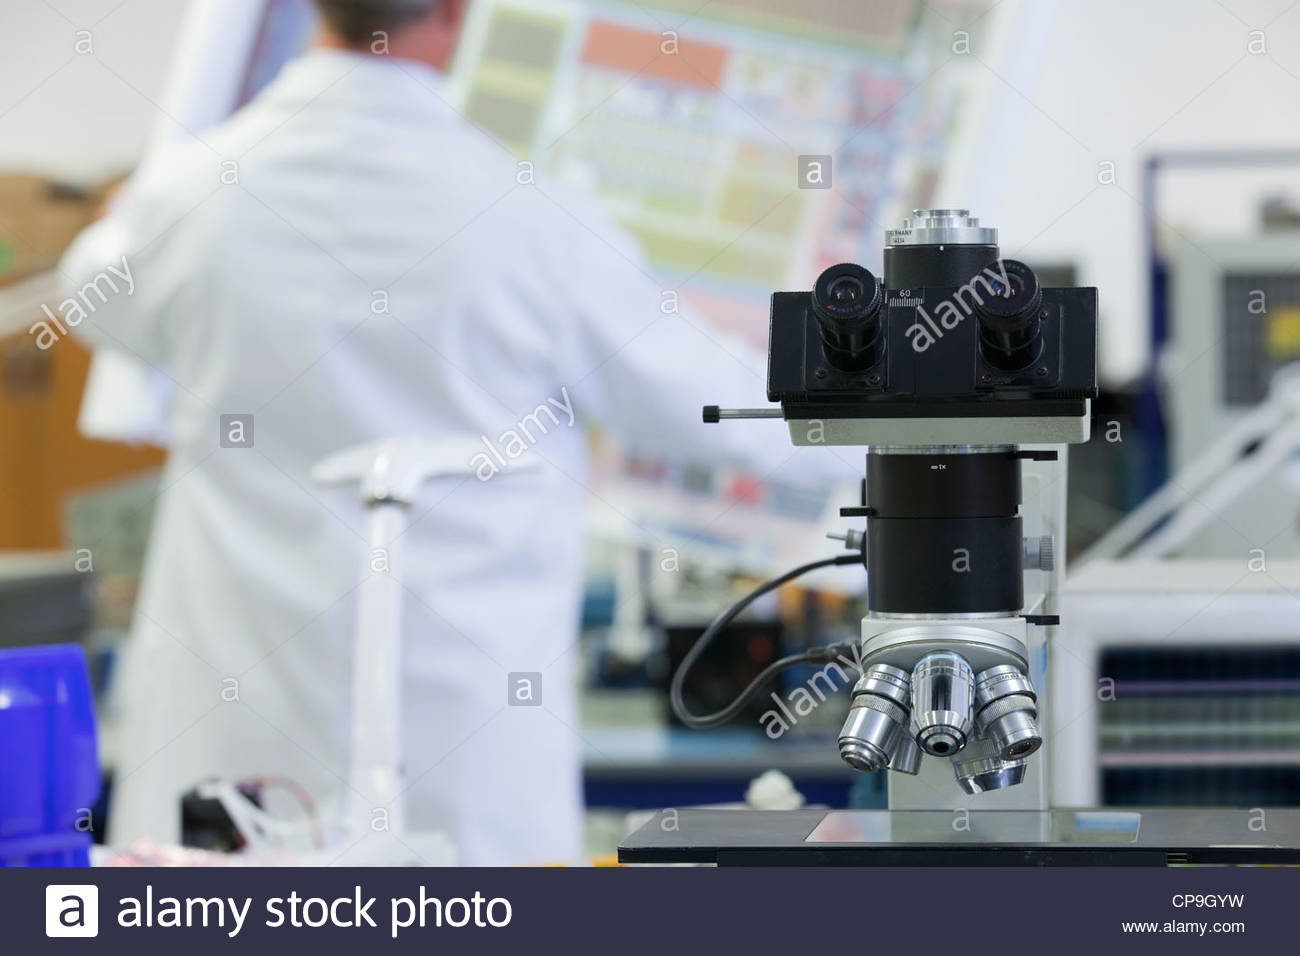 Circuit Diagram Stock Photos Images Alamy Led Light Organ Circuits Lab Engineer Examining In Laboratory With Telescope Foreground Image